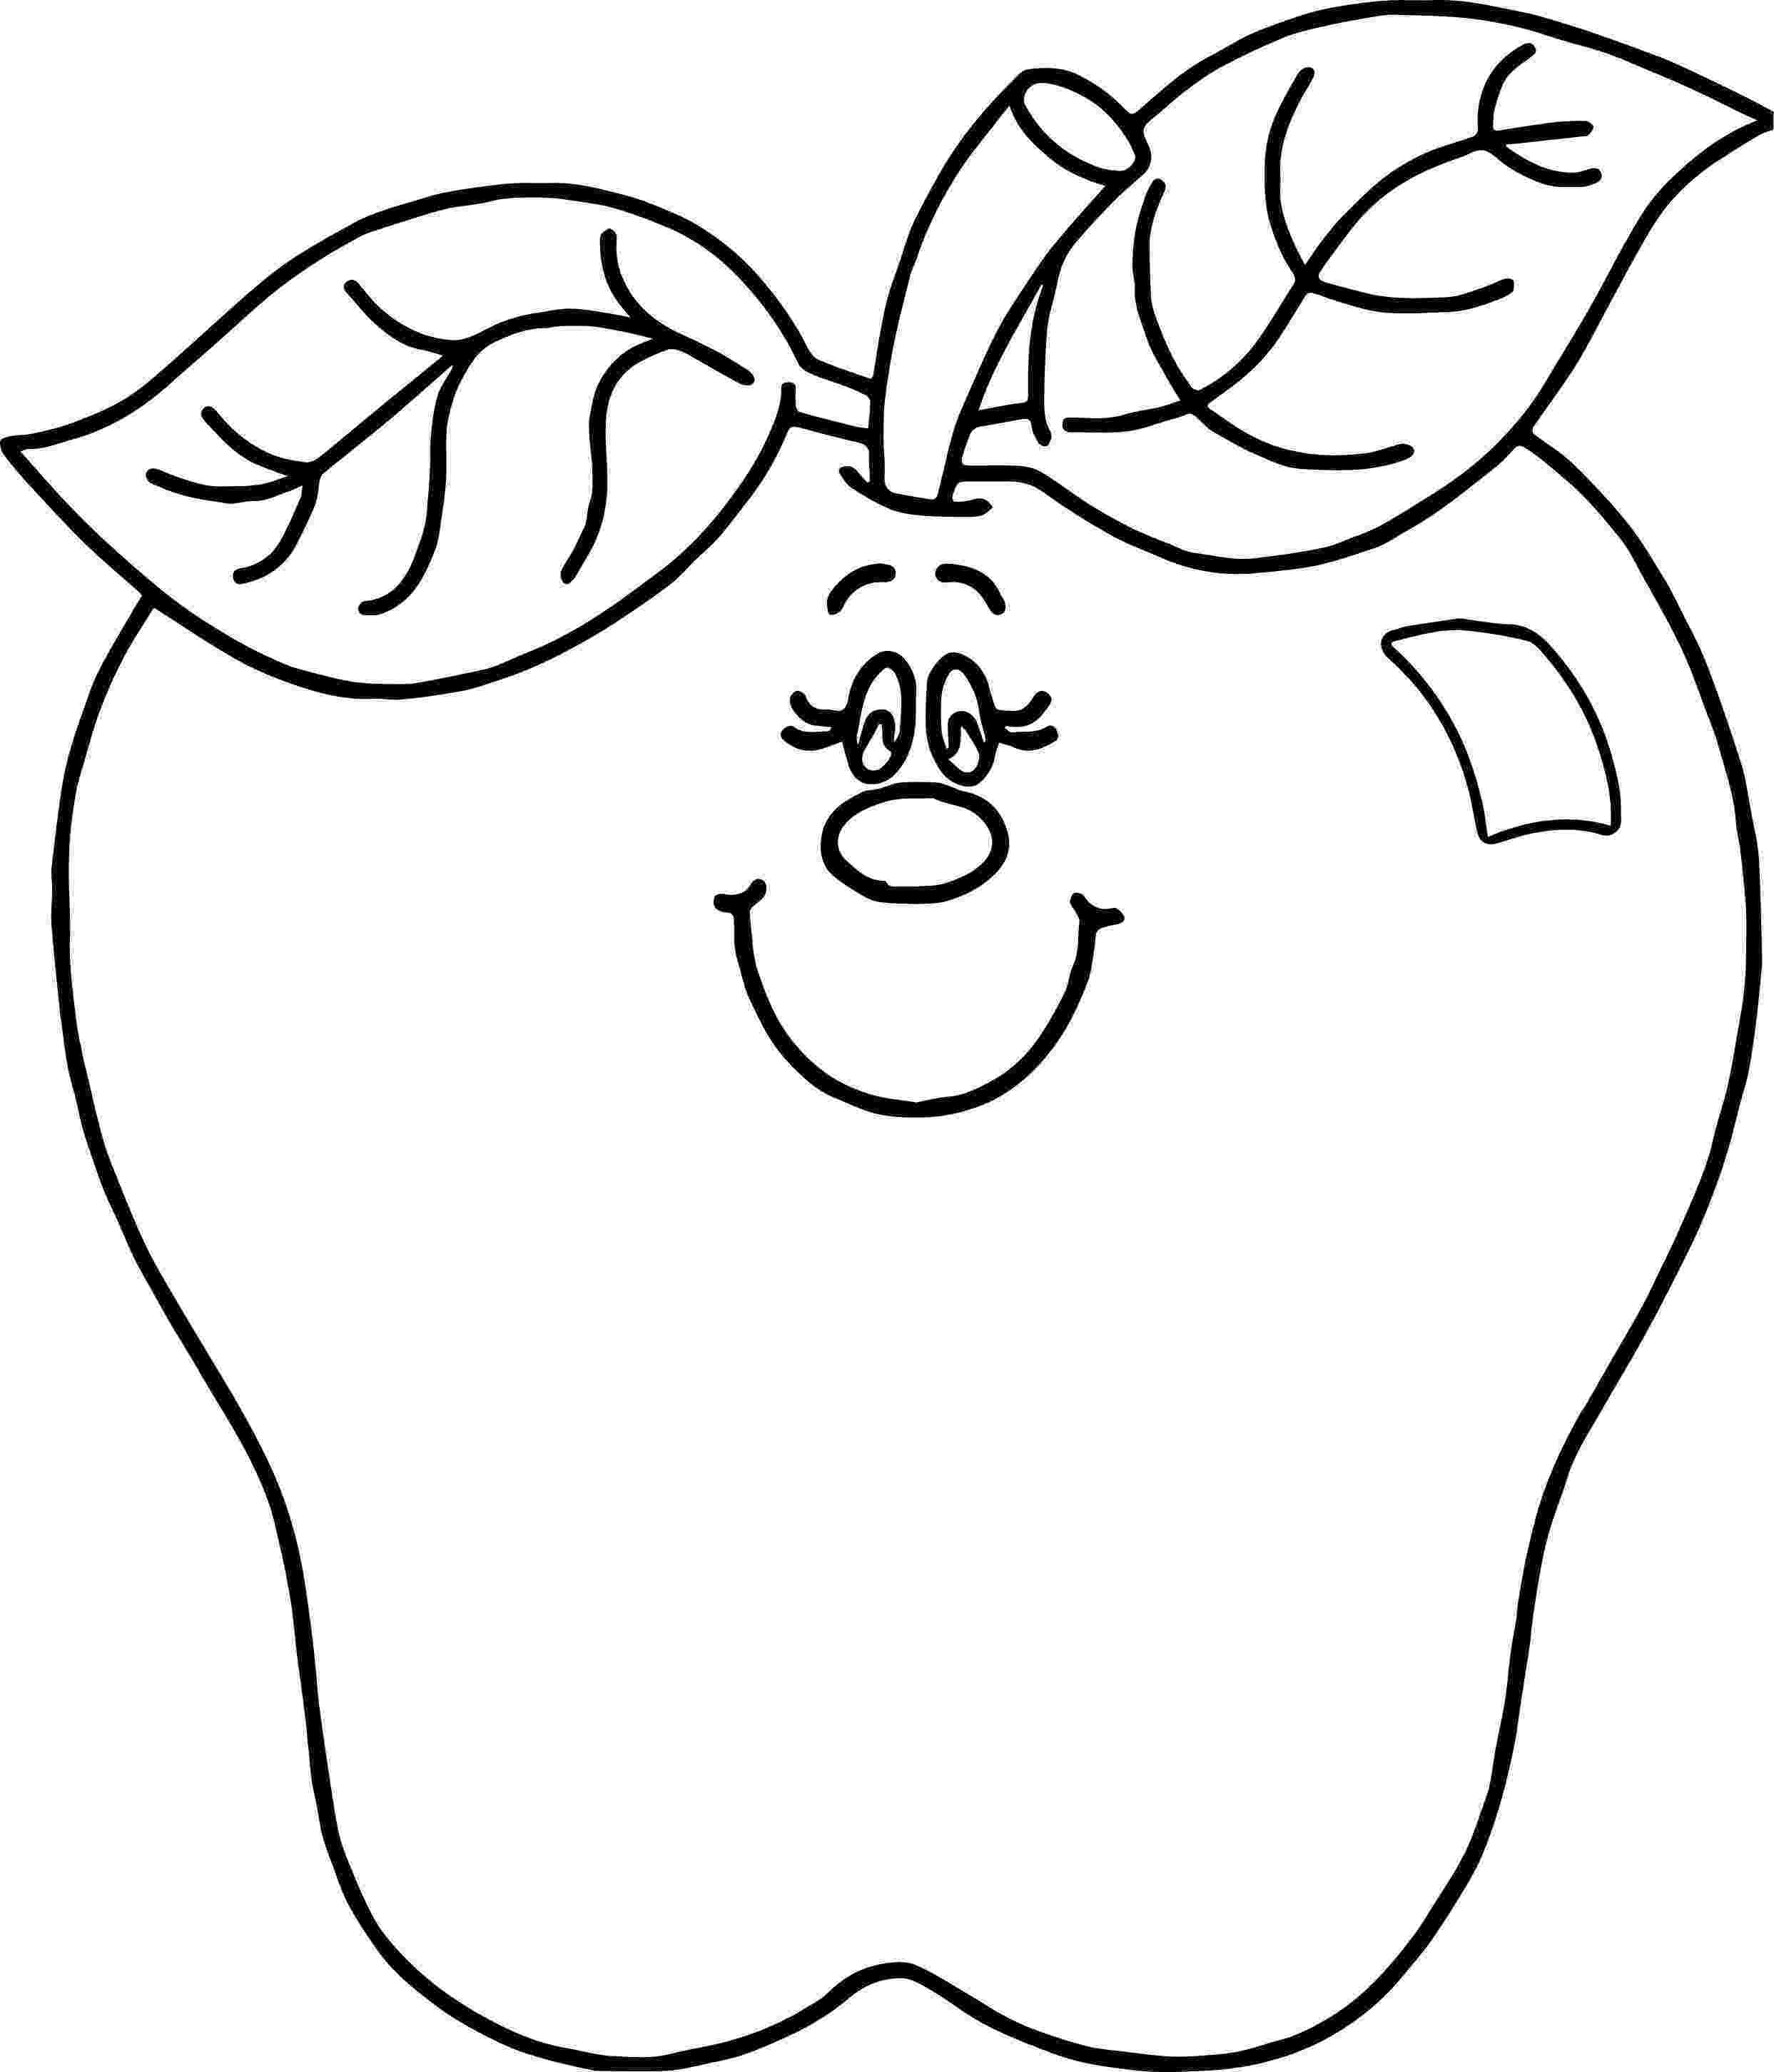 awesome coloring pages for kids free printable skull coloring pages for kids kids for coloring pages awesome